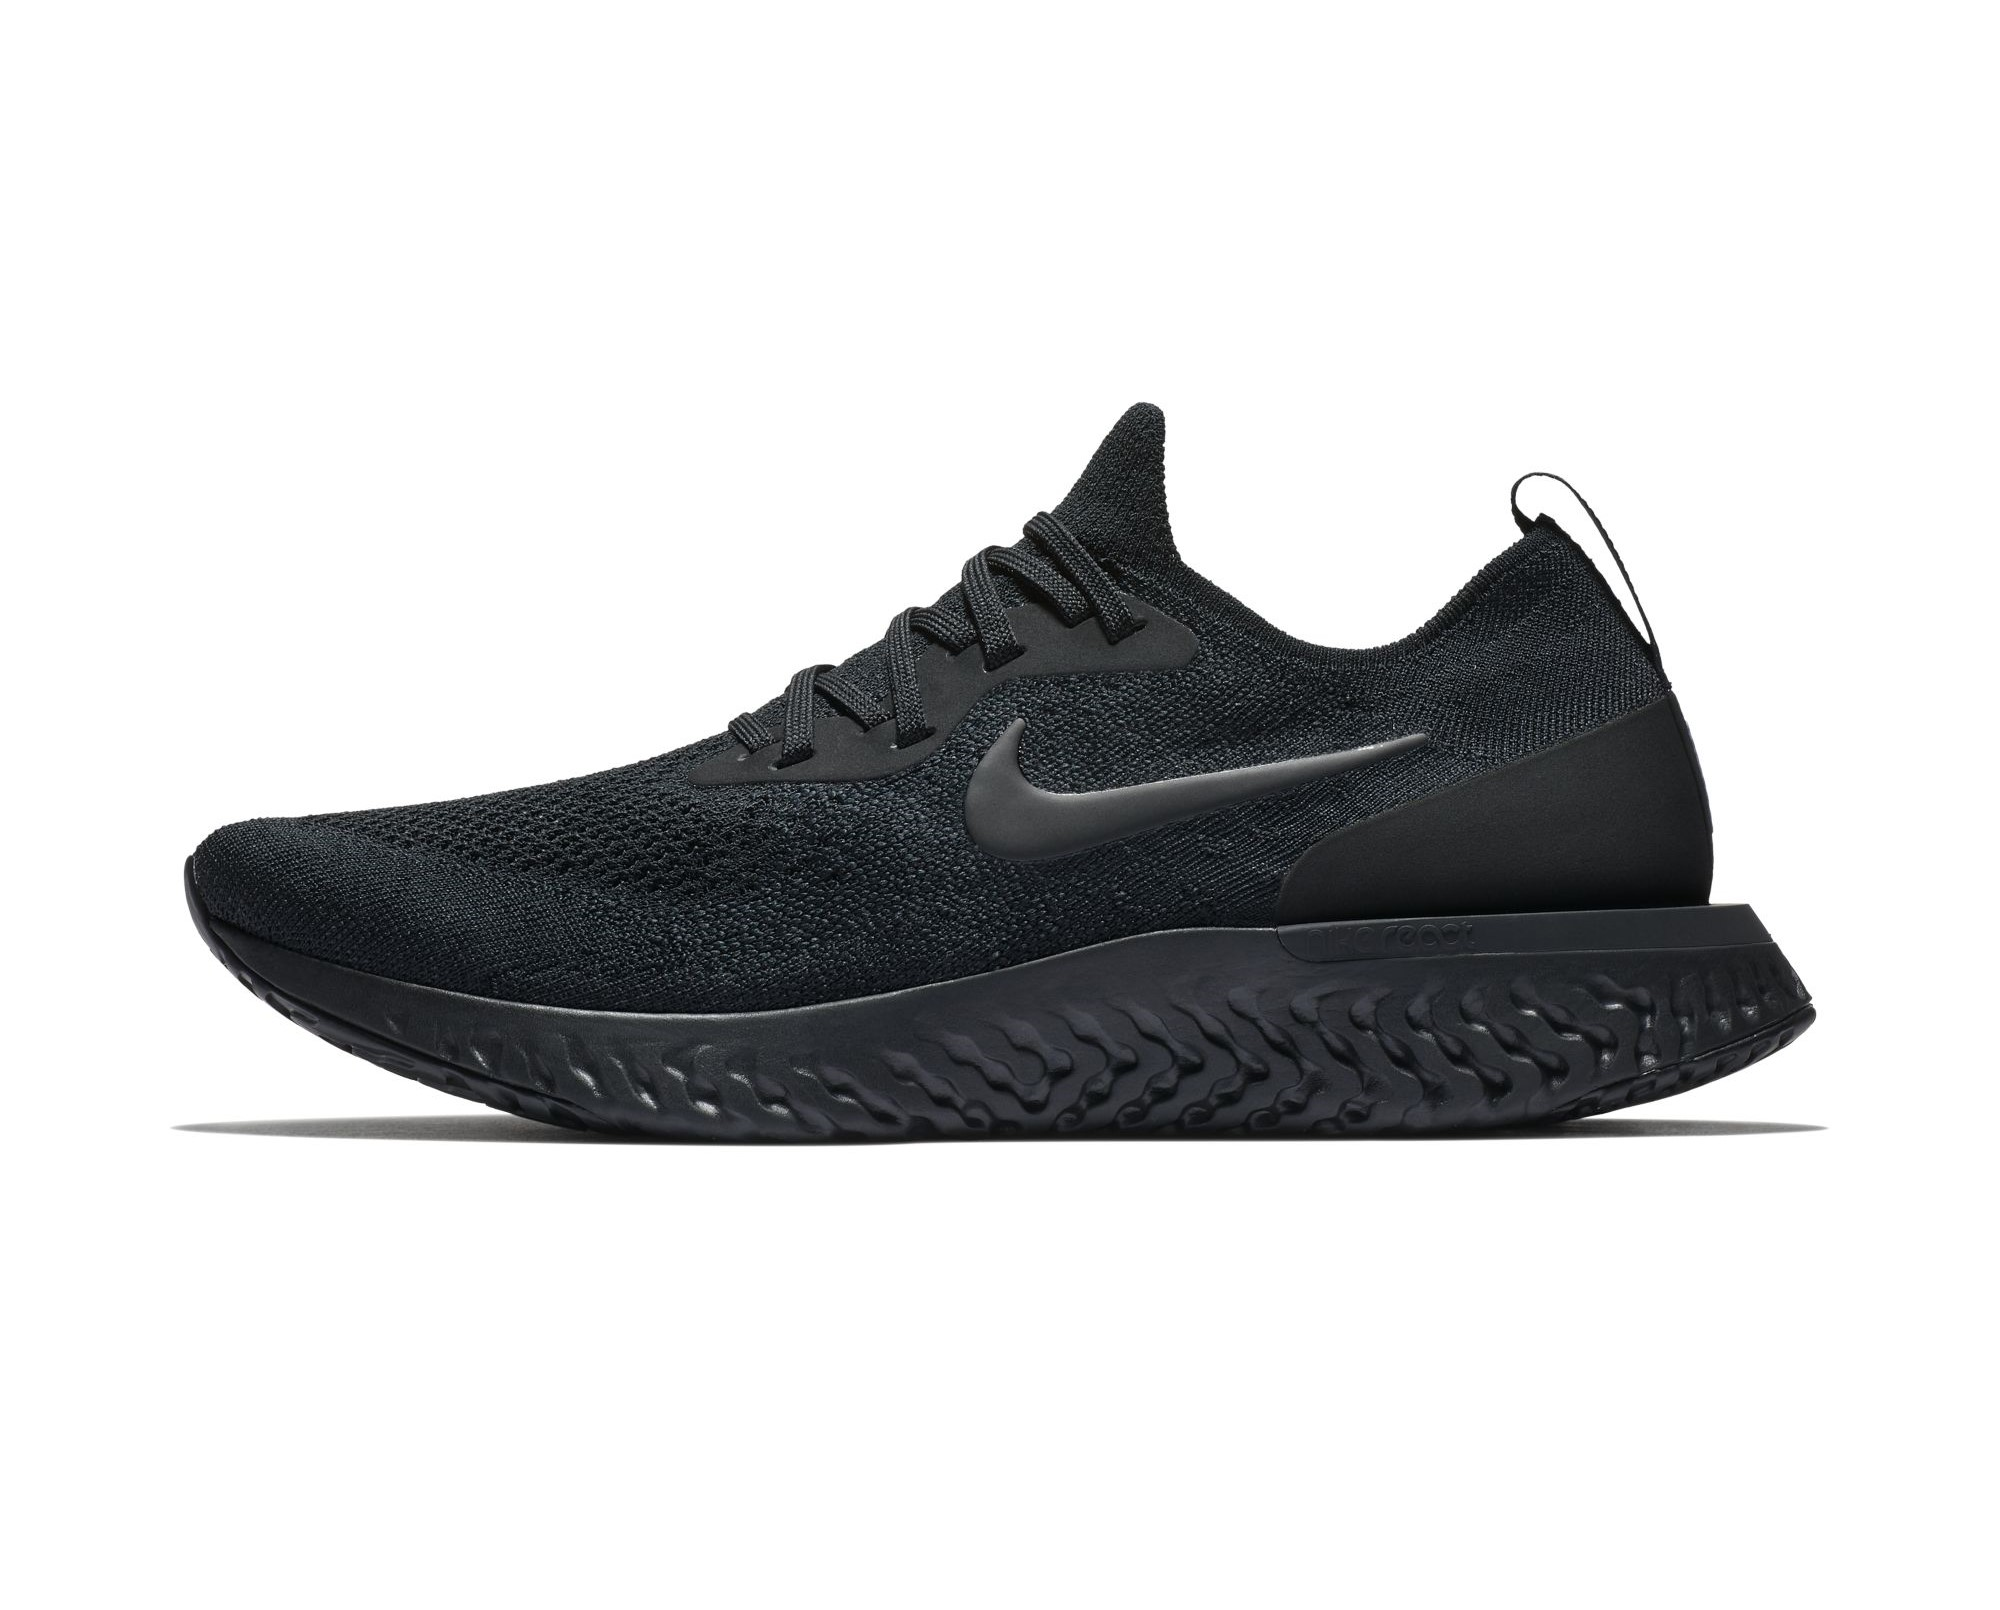 Epic React The Nike Epic React Flyknit 'Triple Black' Has Dropped Overseas ...